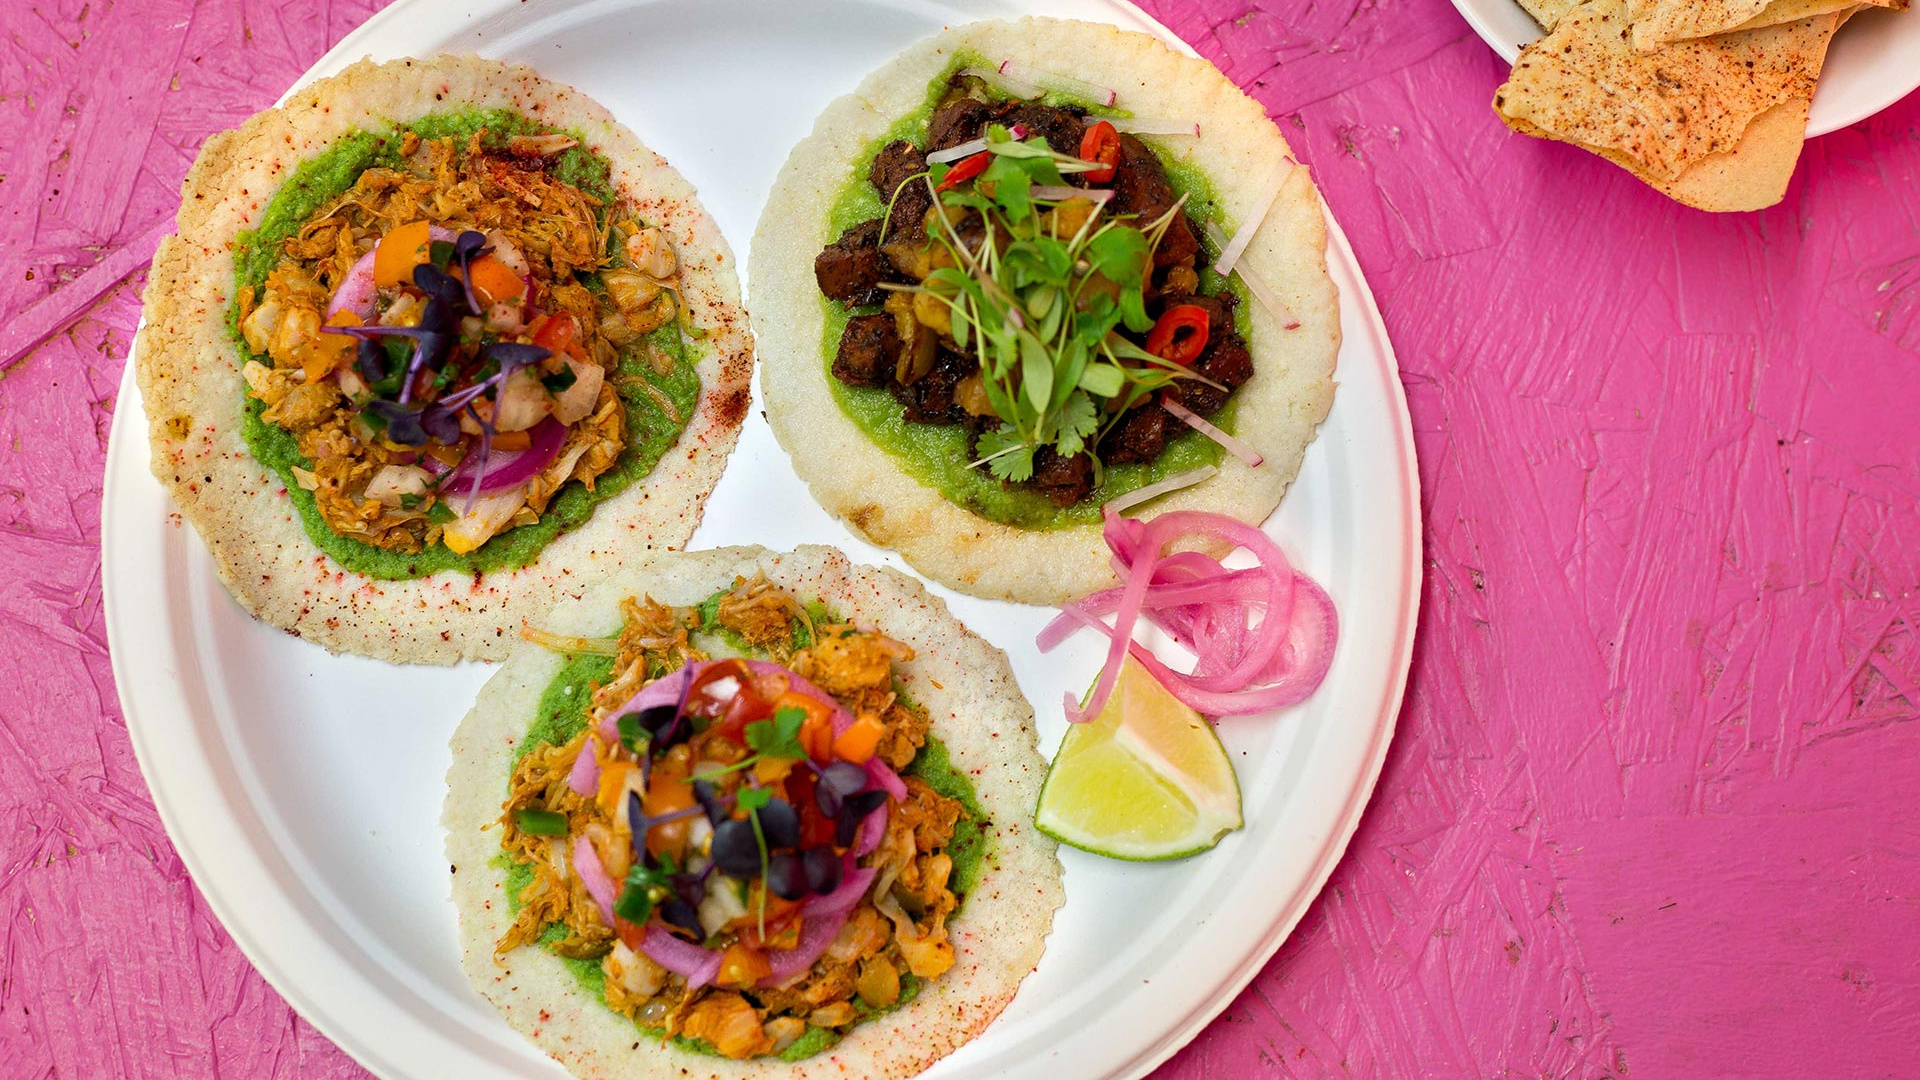 Club Mexicana's vegan tacos at its new location at The Spread Eagle